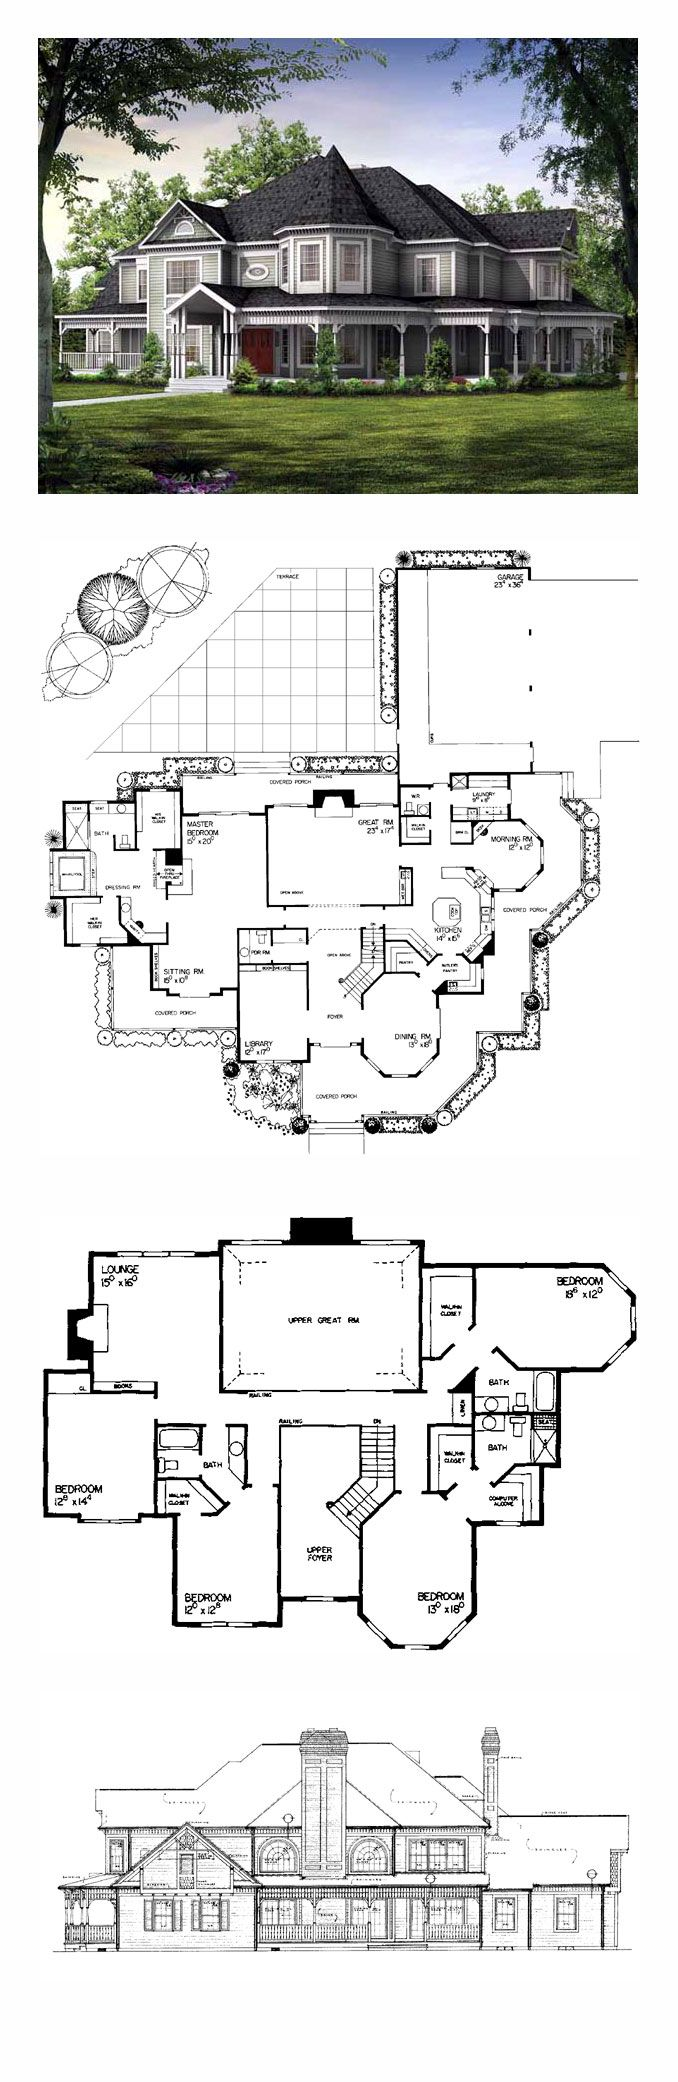 Small 5 Bedroom House Plans